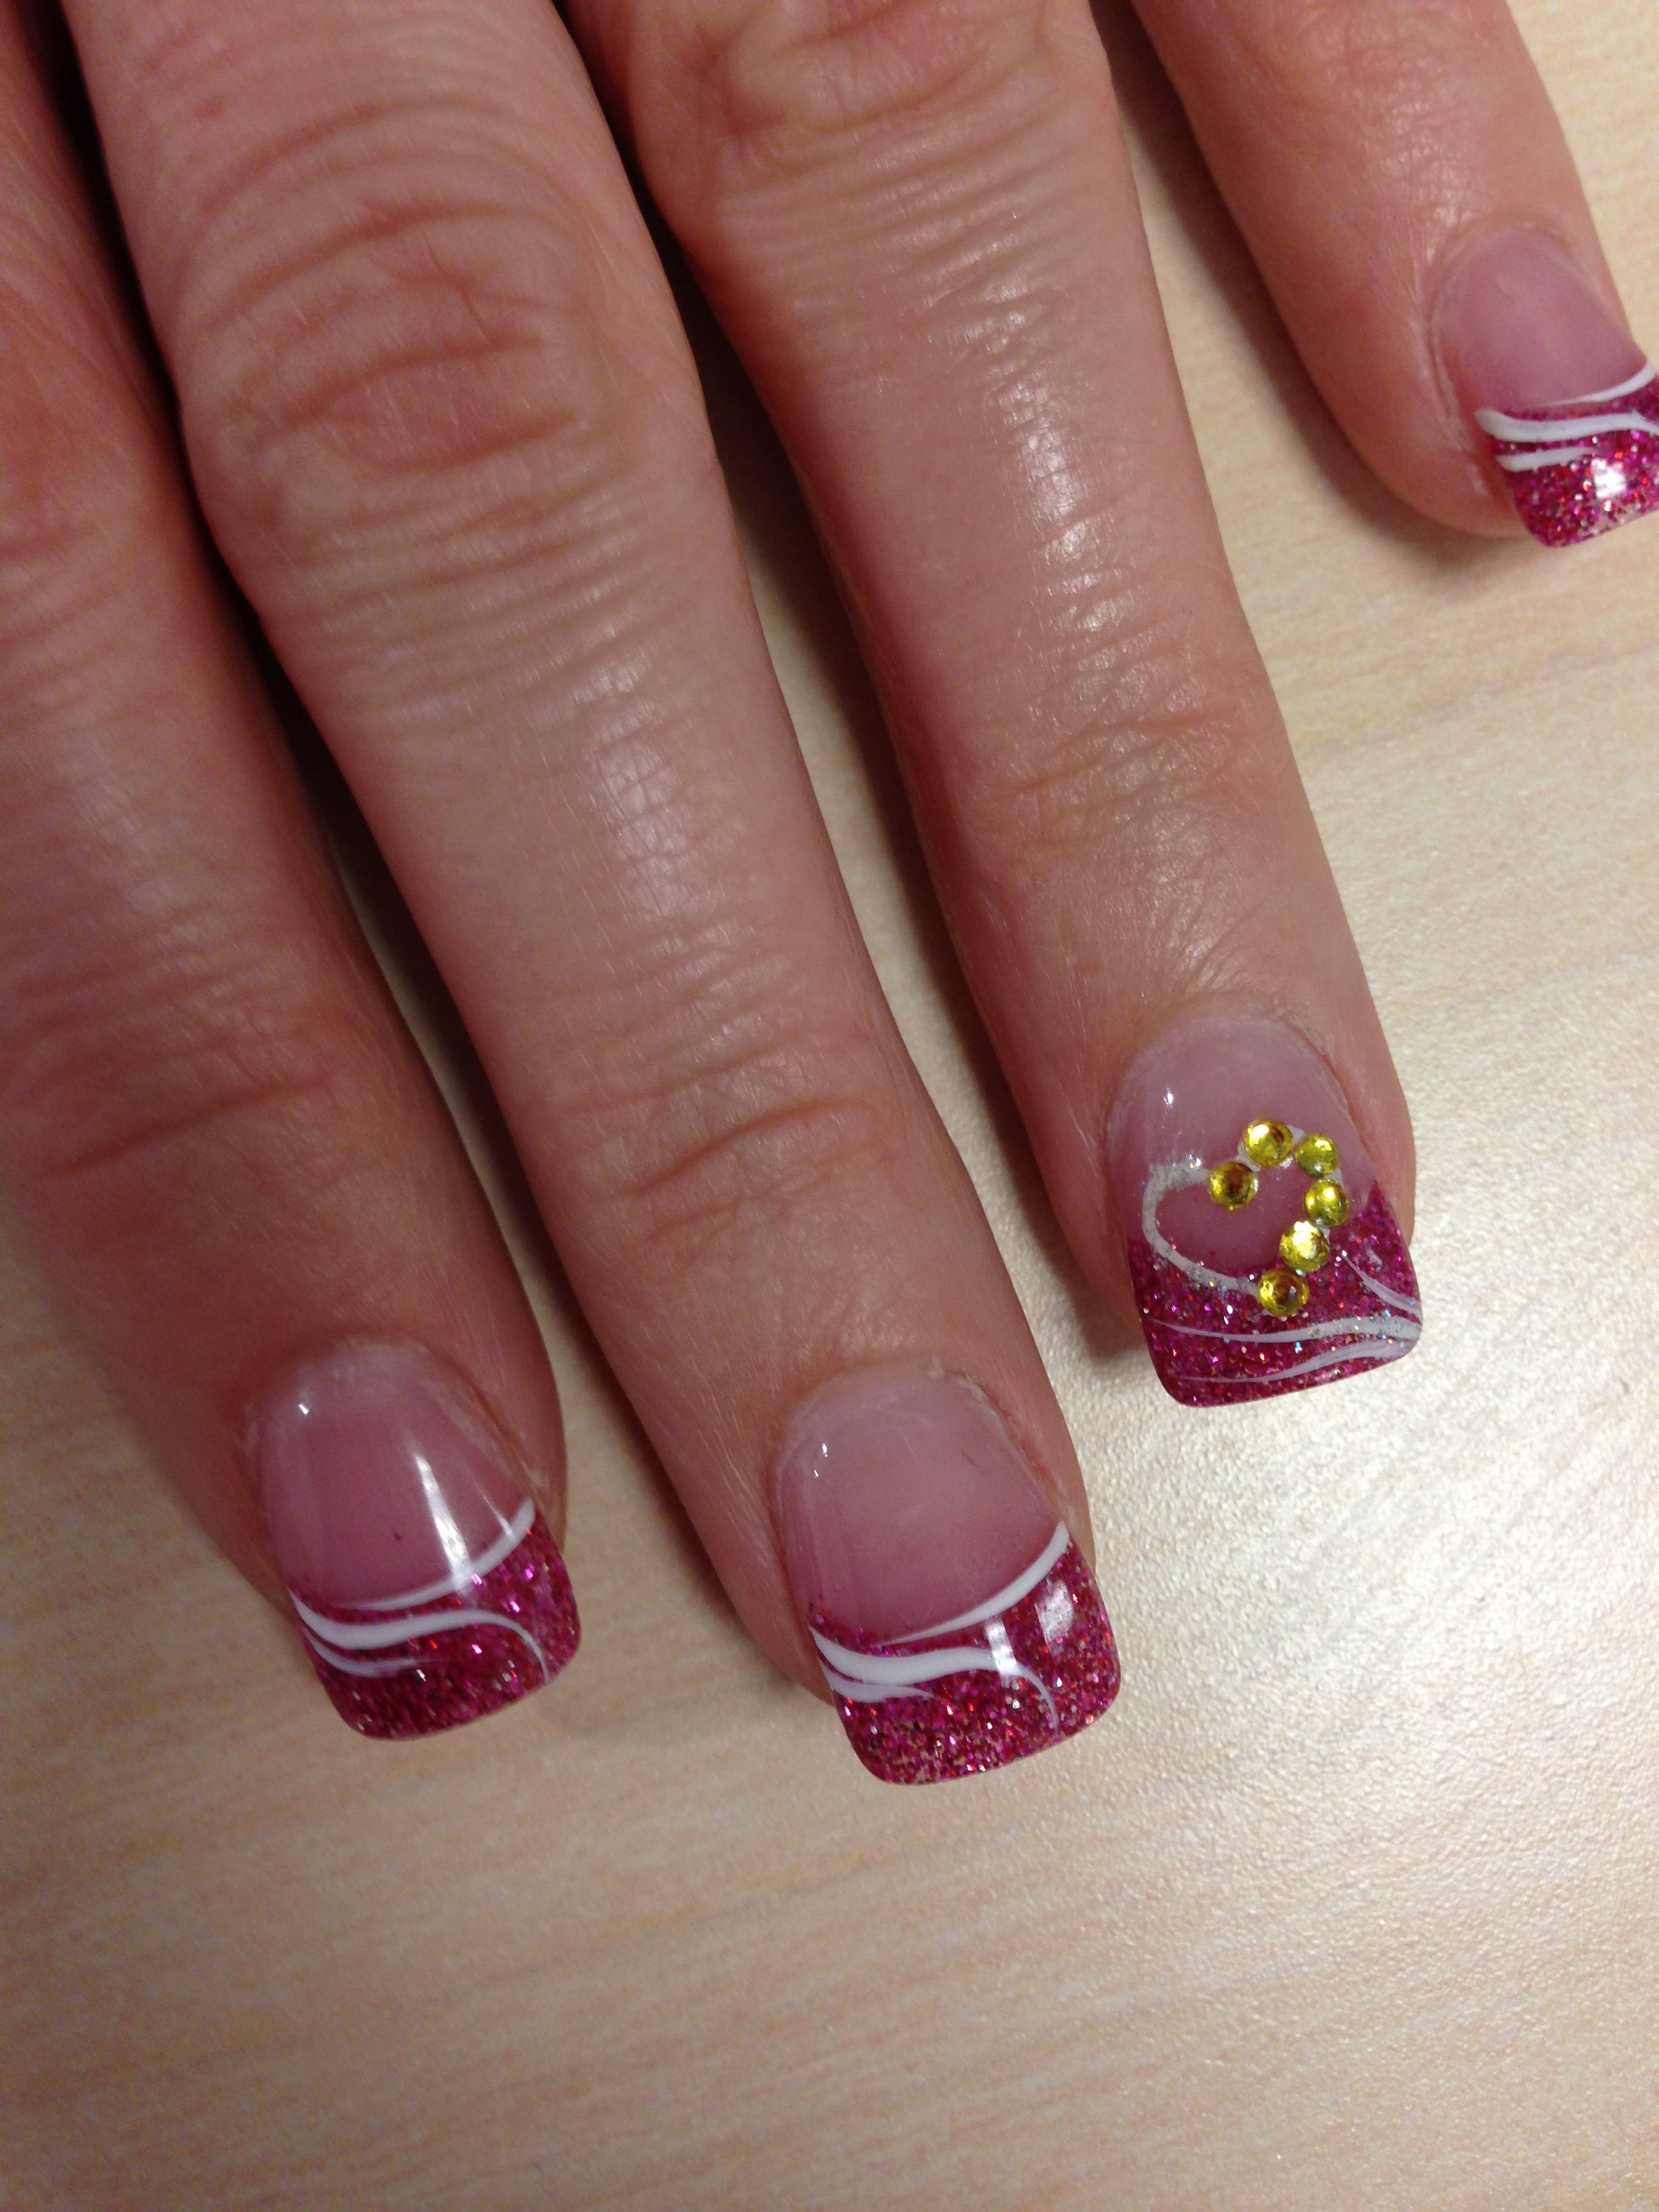 random - french manicure pink glitter and white lines | Nails ...